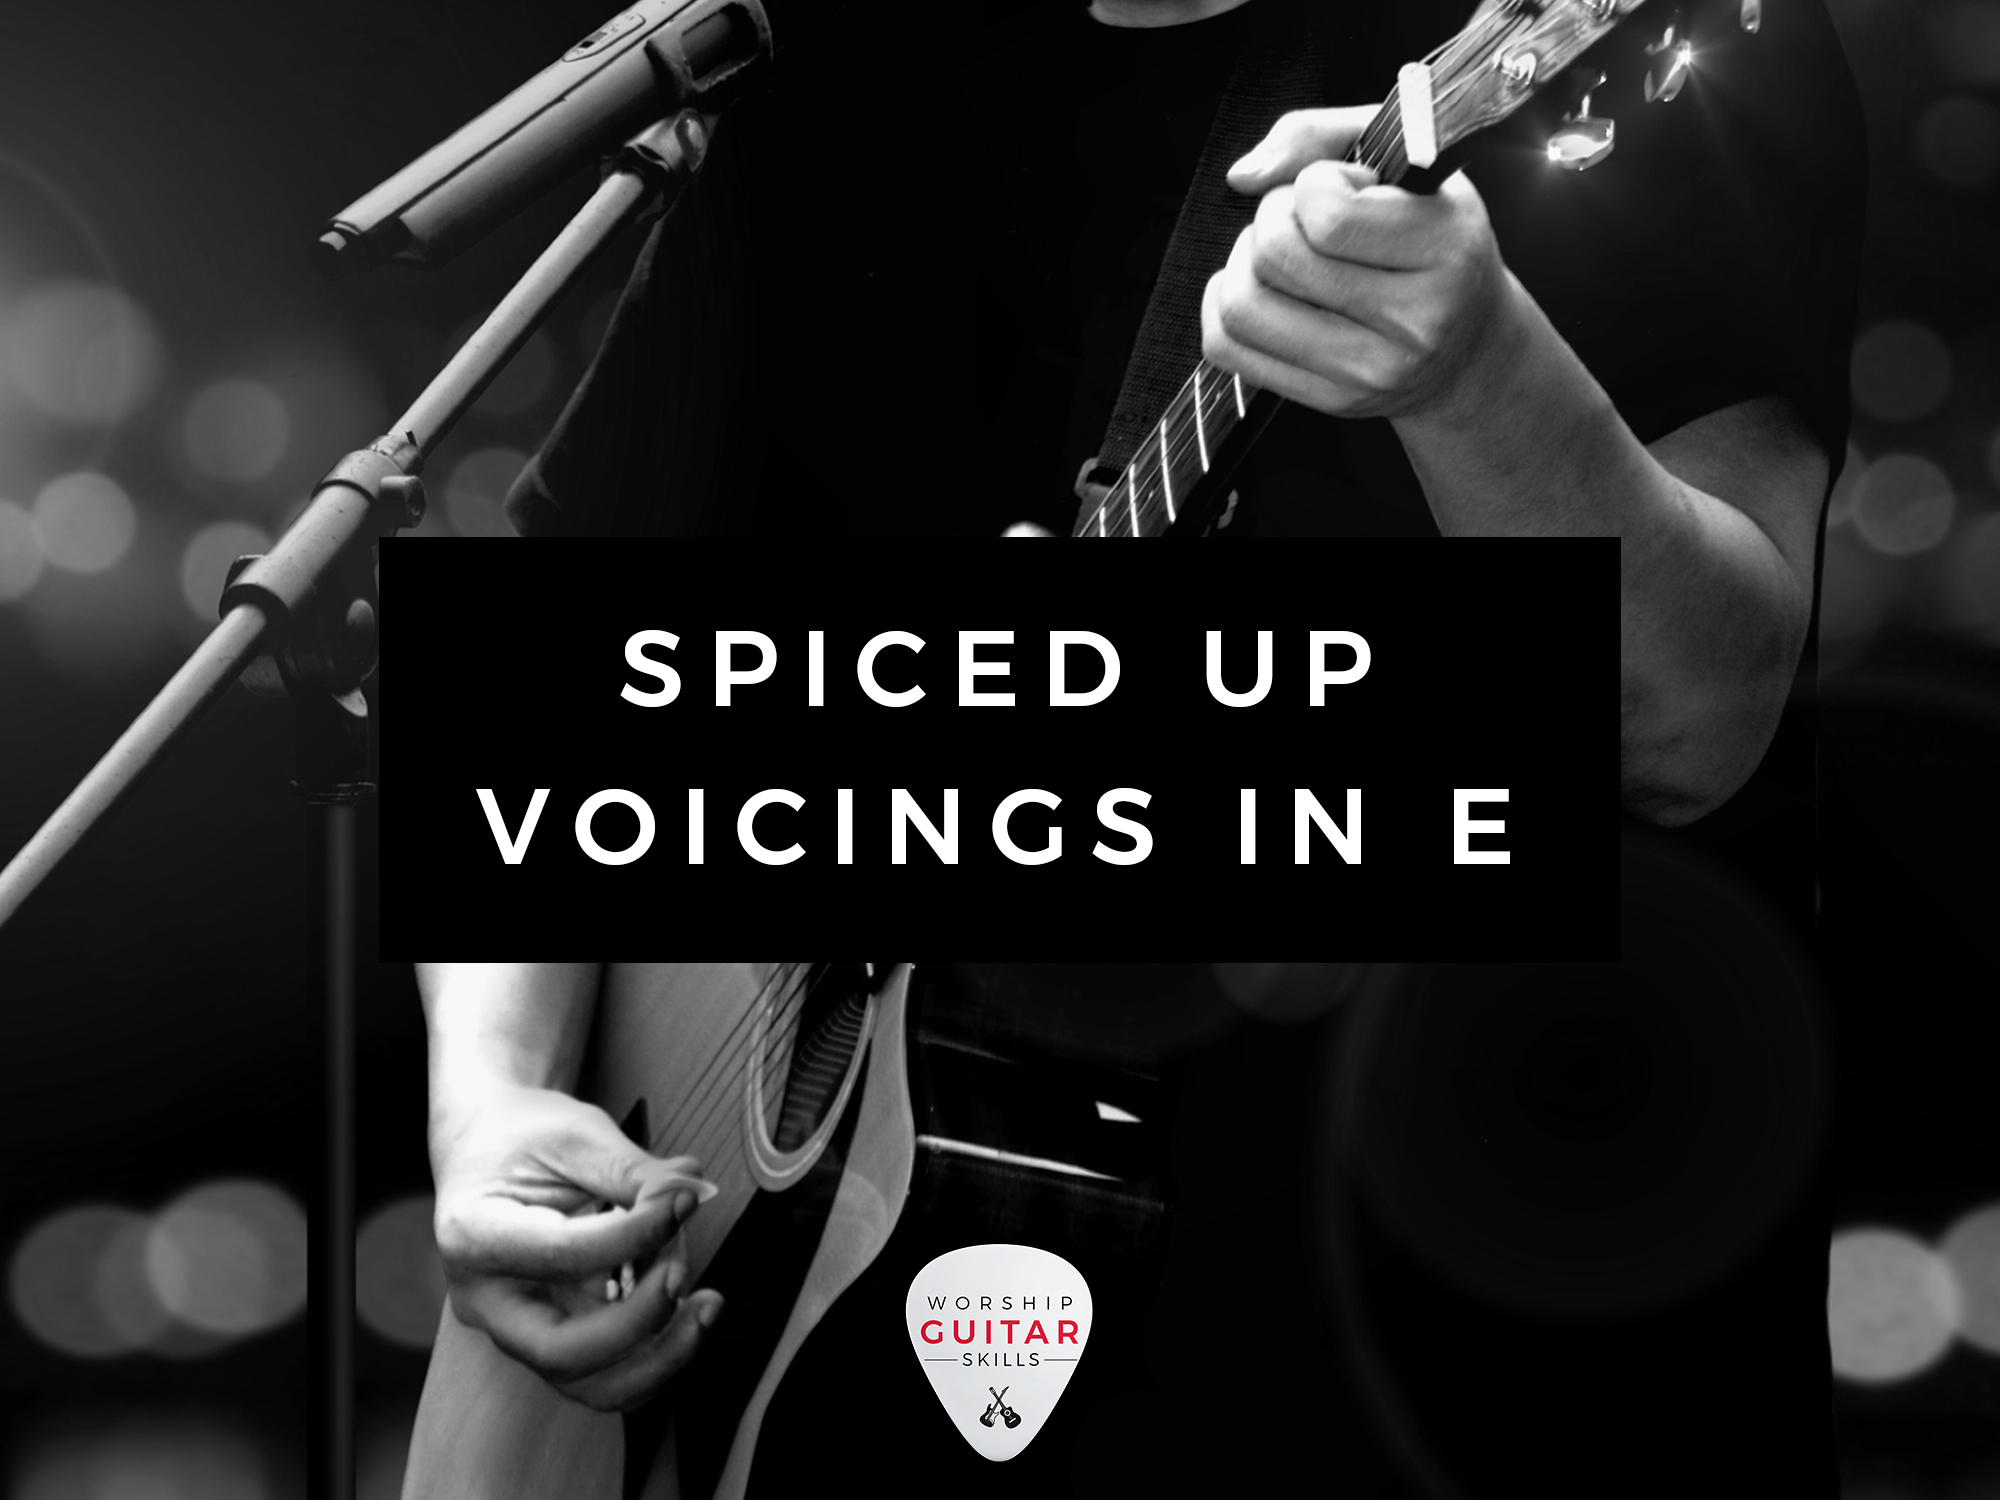 Spiced Up Voicings in the Key of E Major